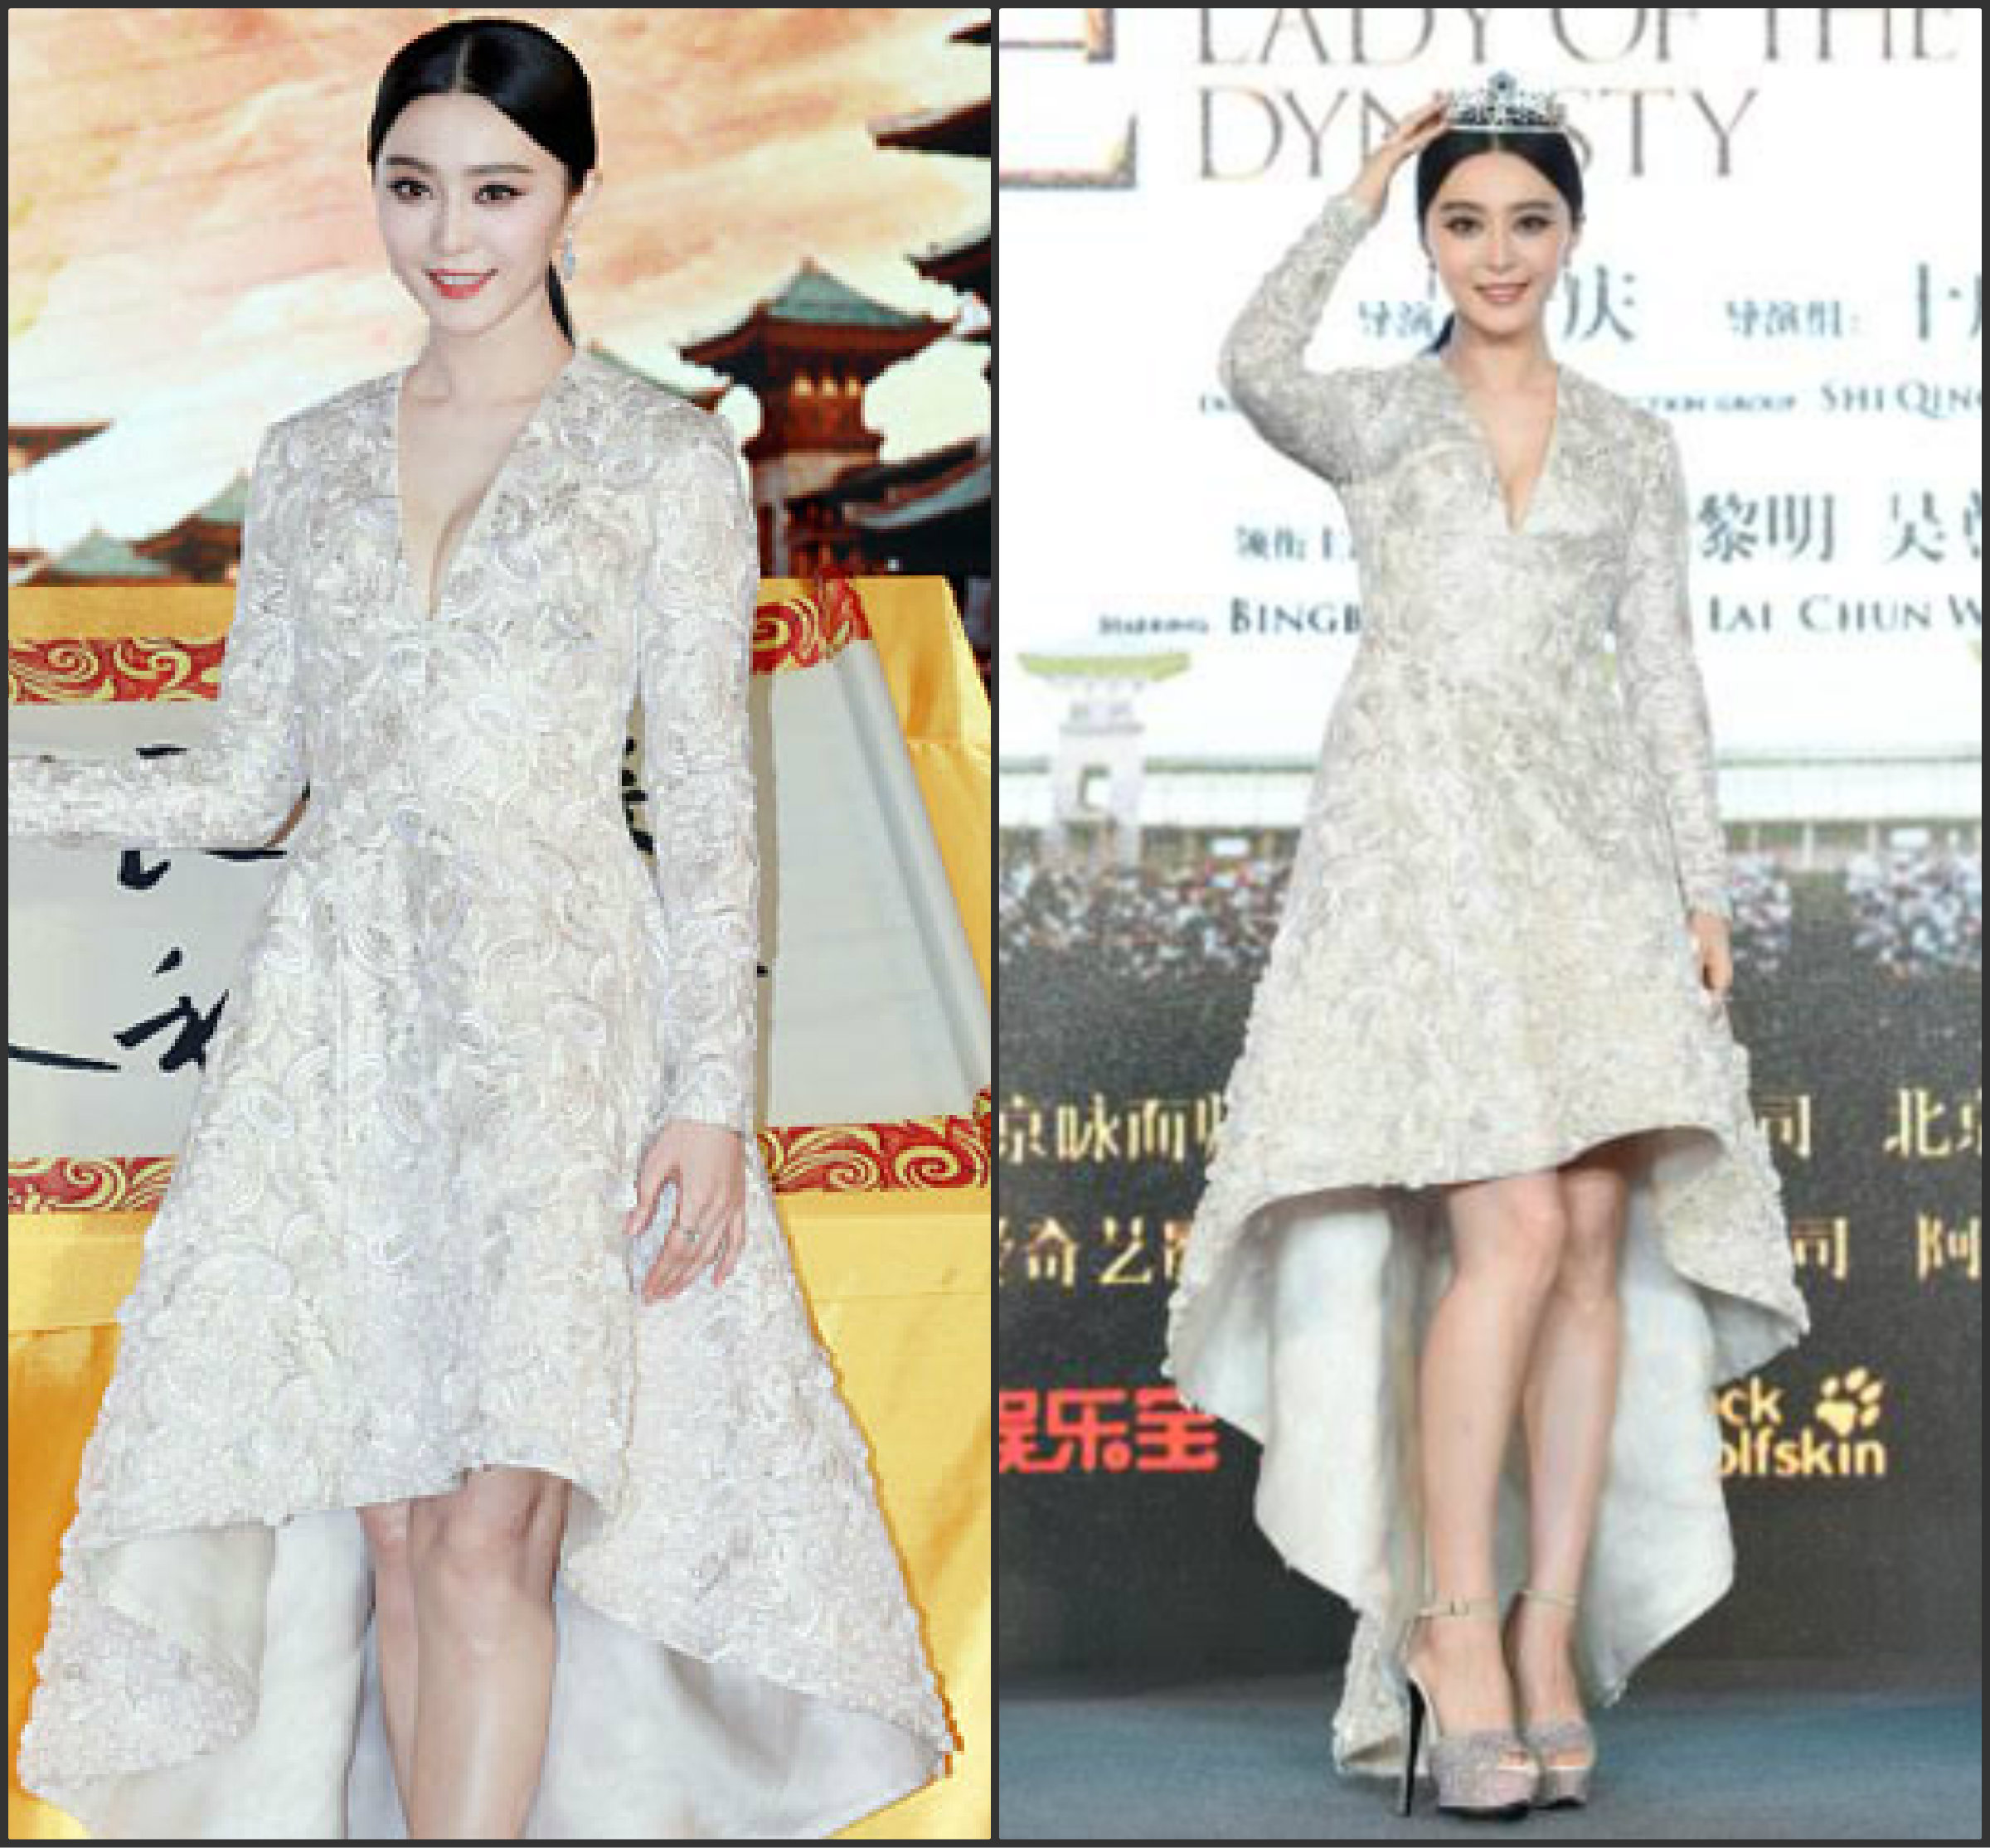 fan-bingbing-in-ralph-russo-at-yang-gui-fei-press-conference